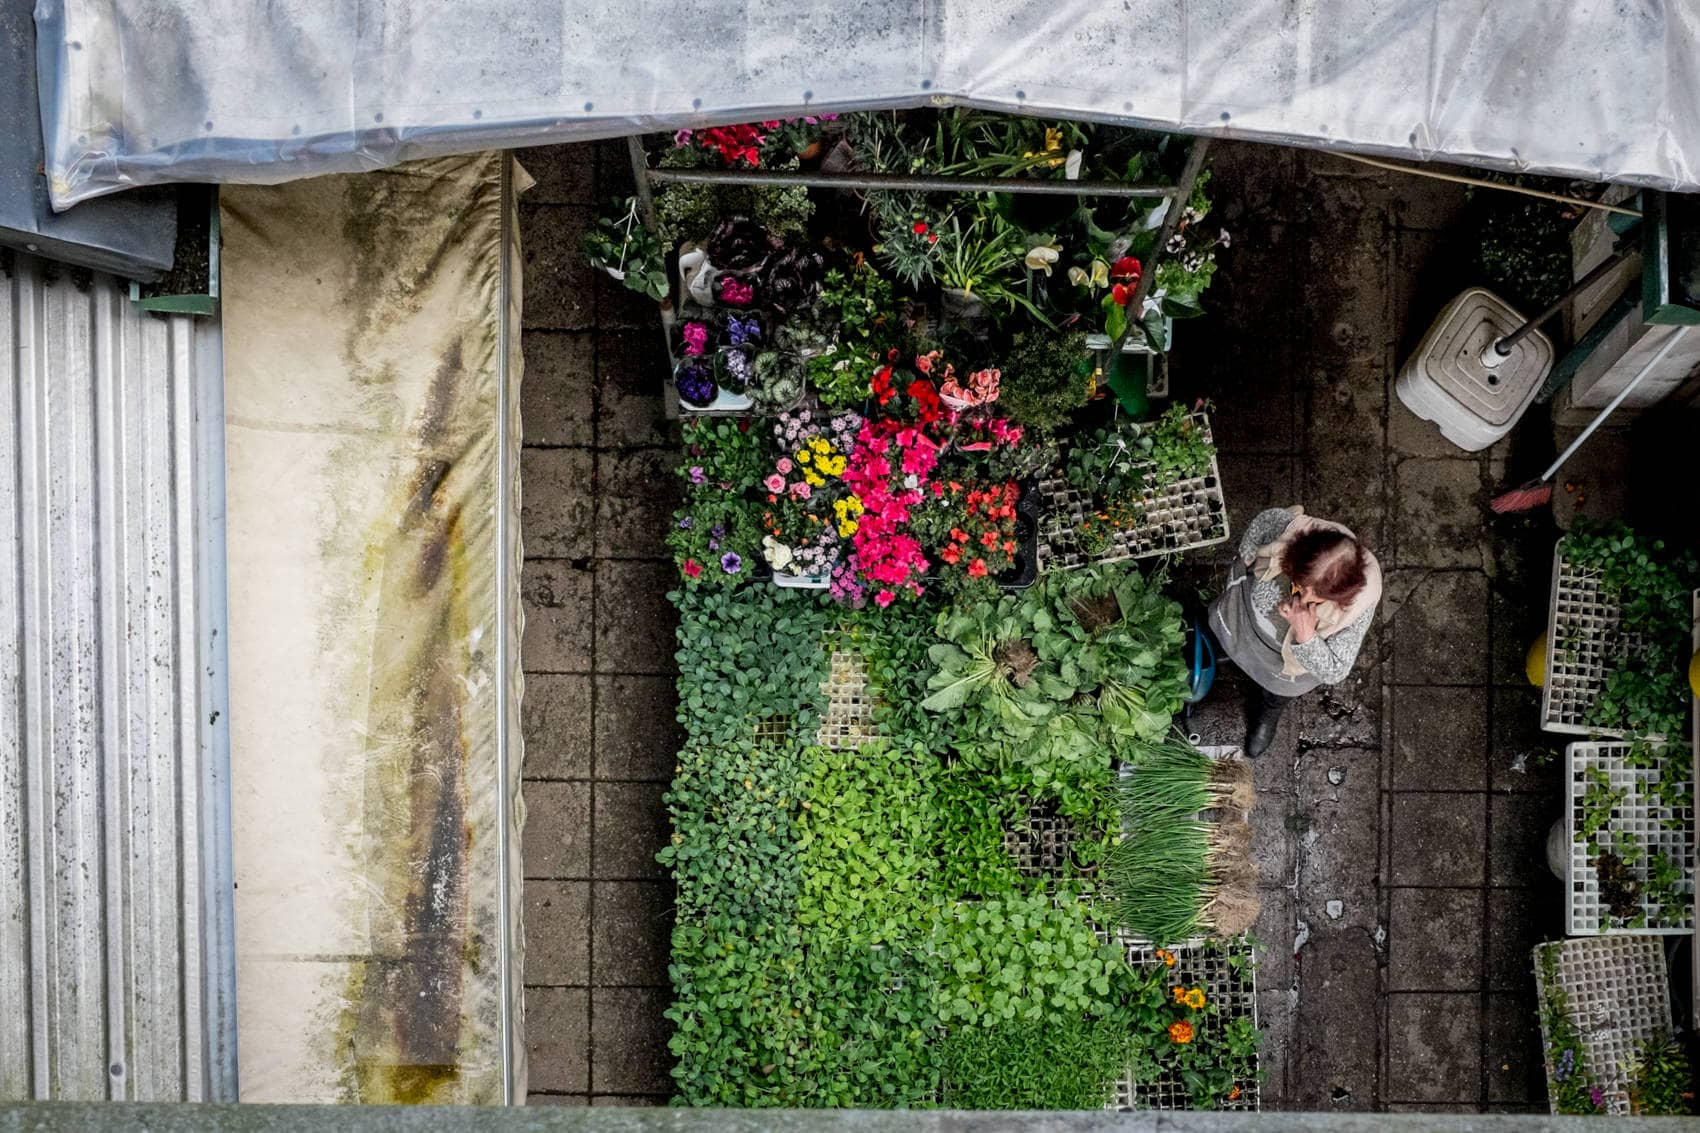 view from above of Mercado do Bolhao market in Porto Street Photography